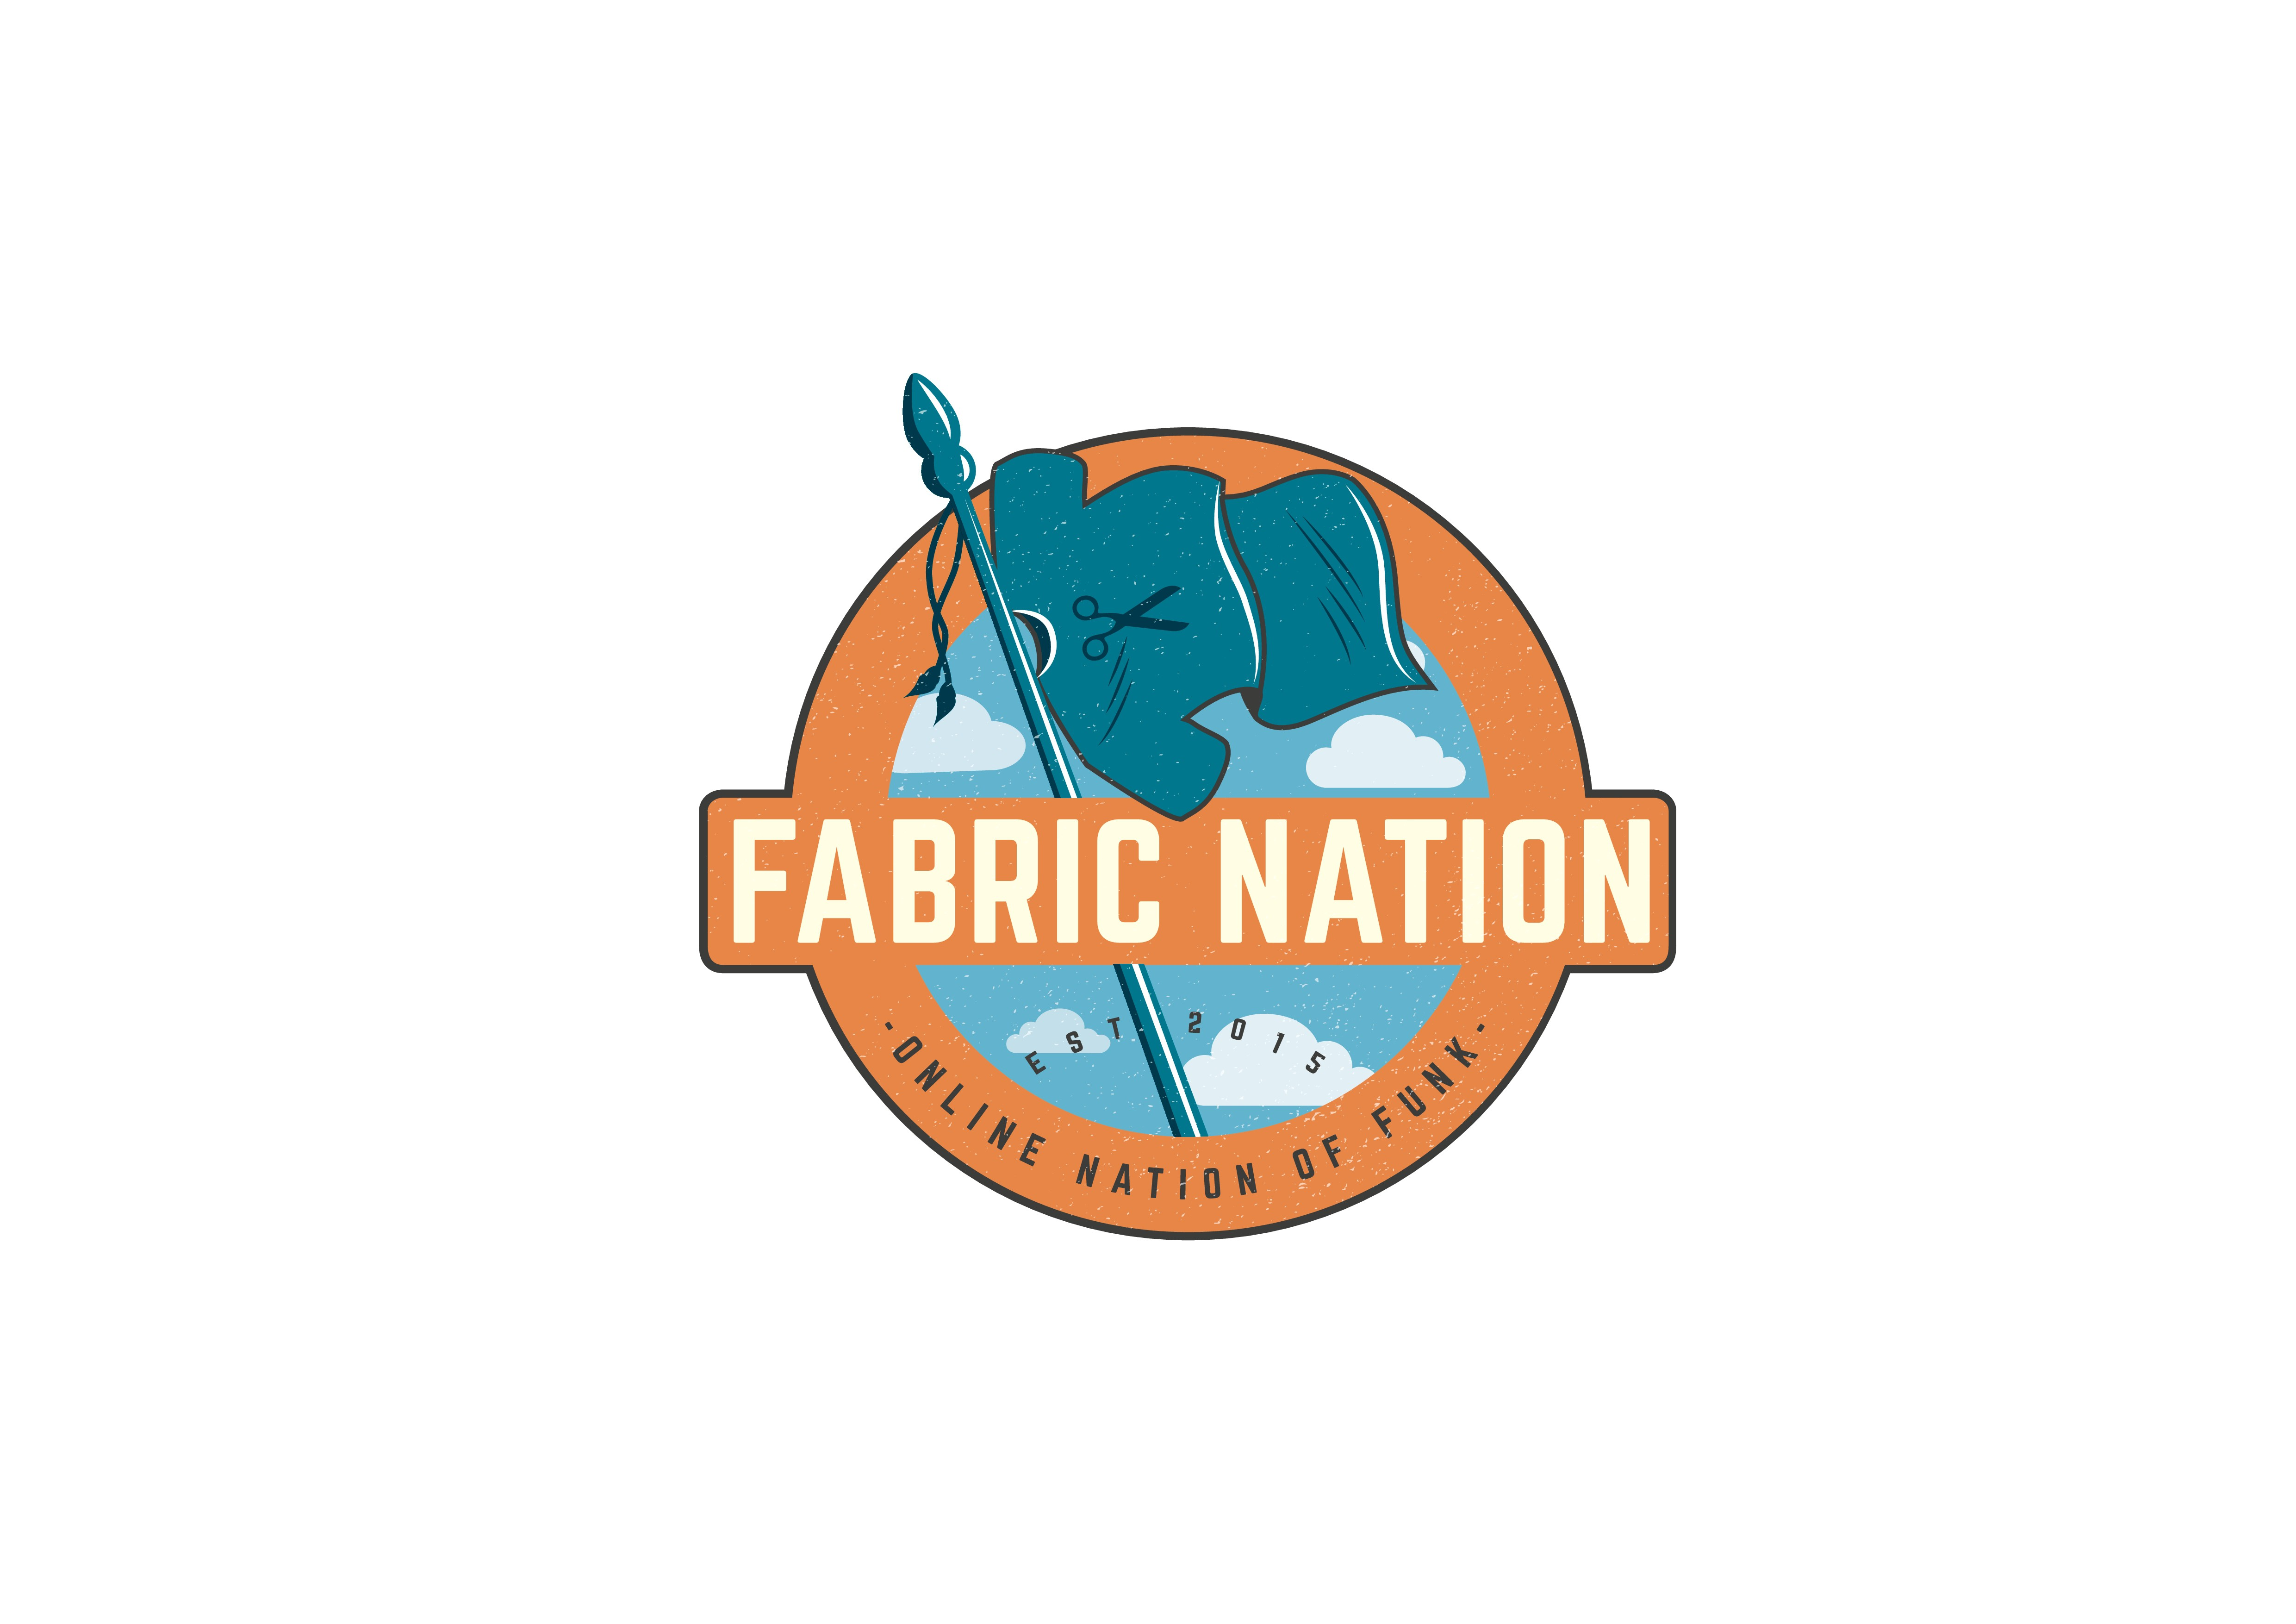 Fabric Nation - Online Nation of Funk